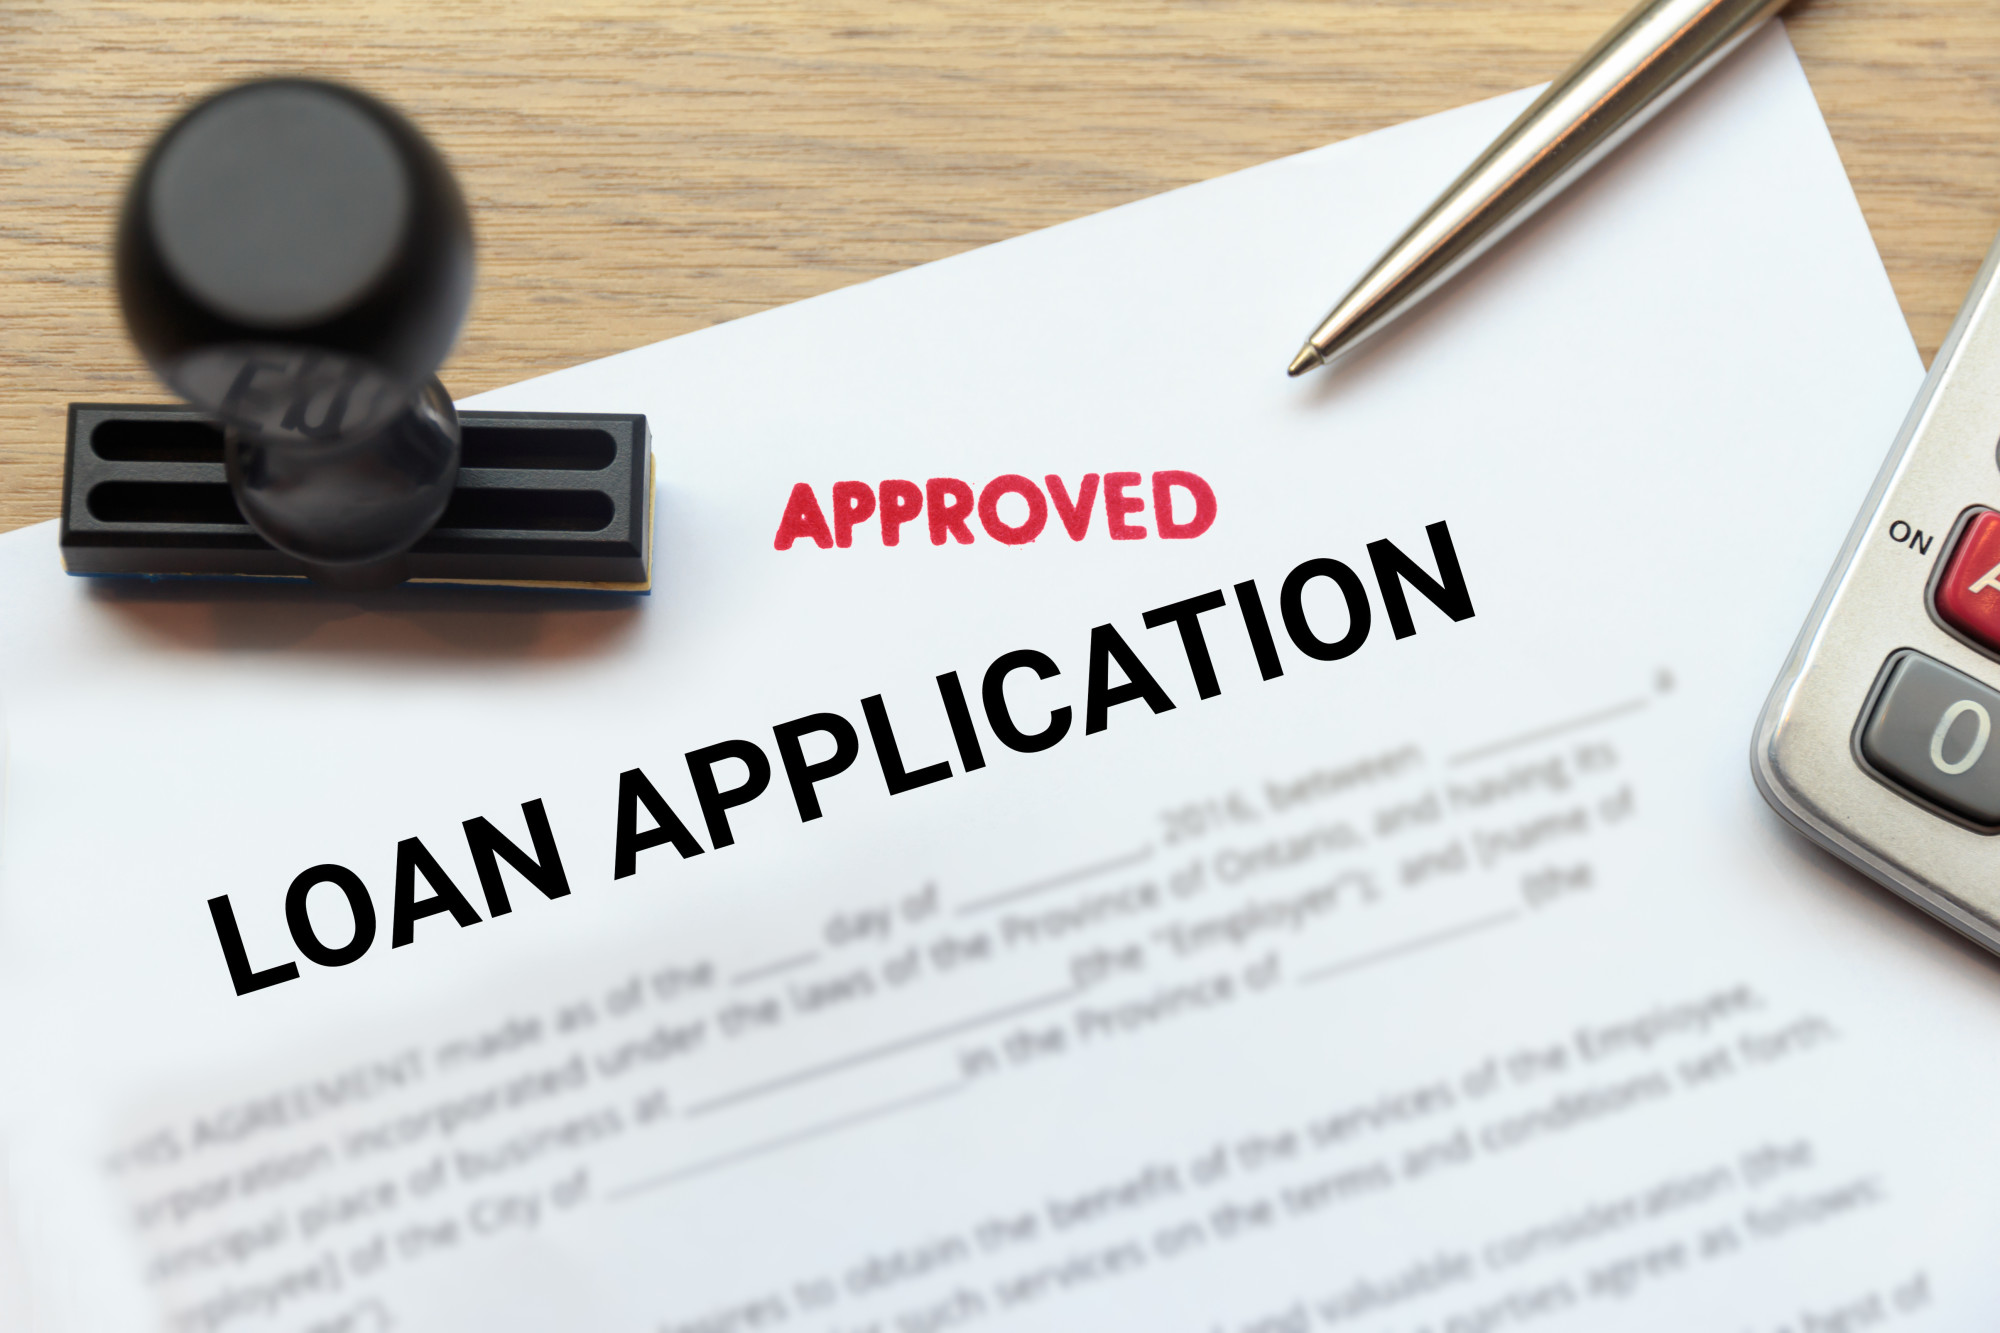 instalment loan vs payday loan